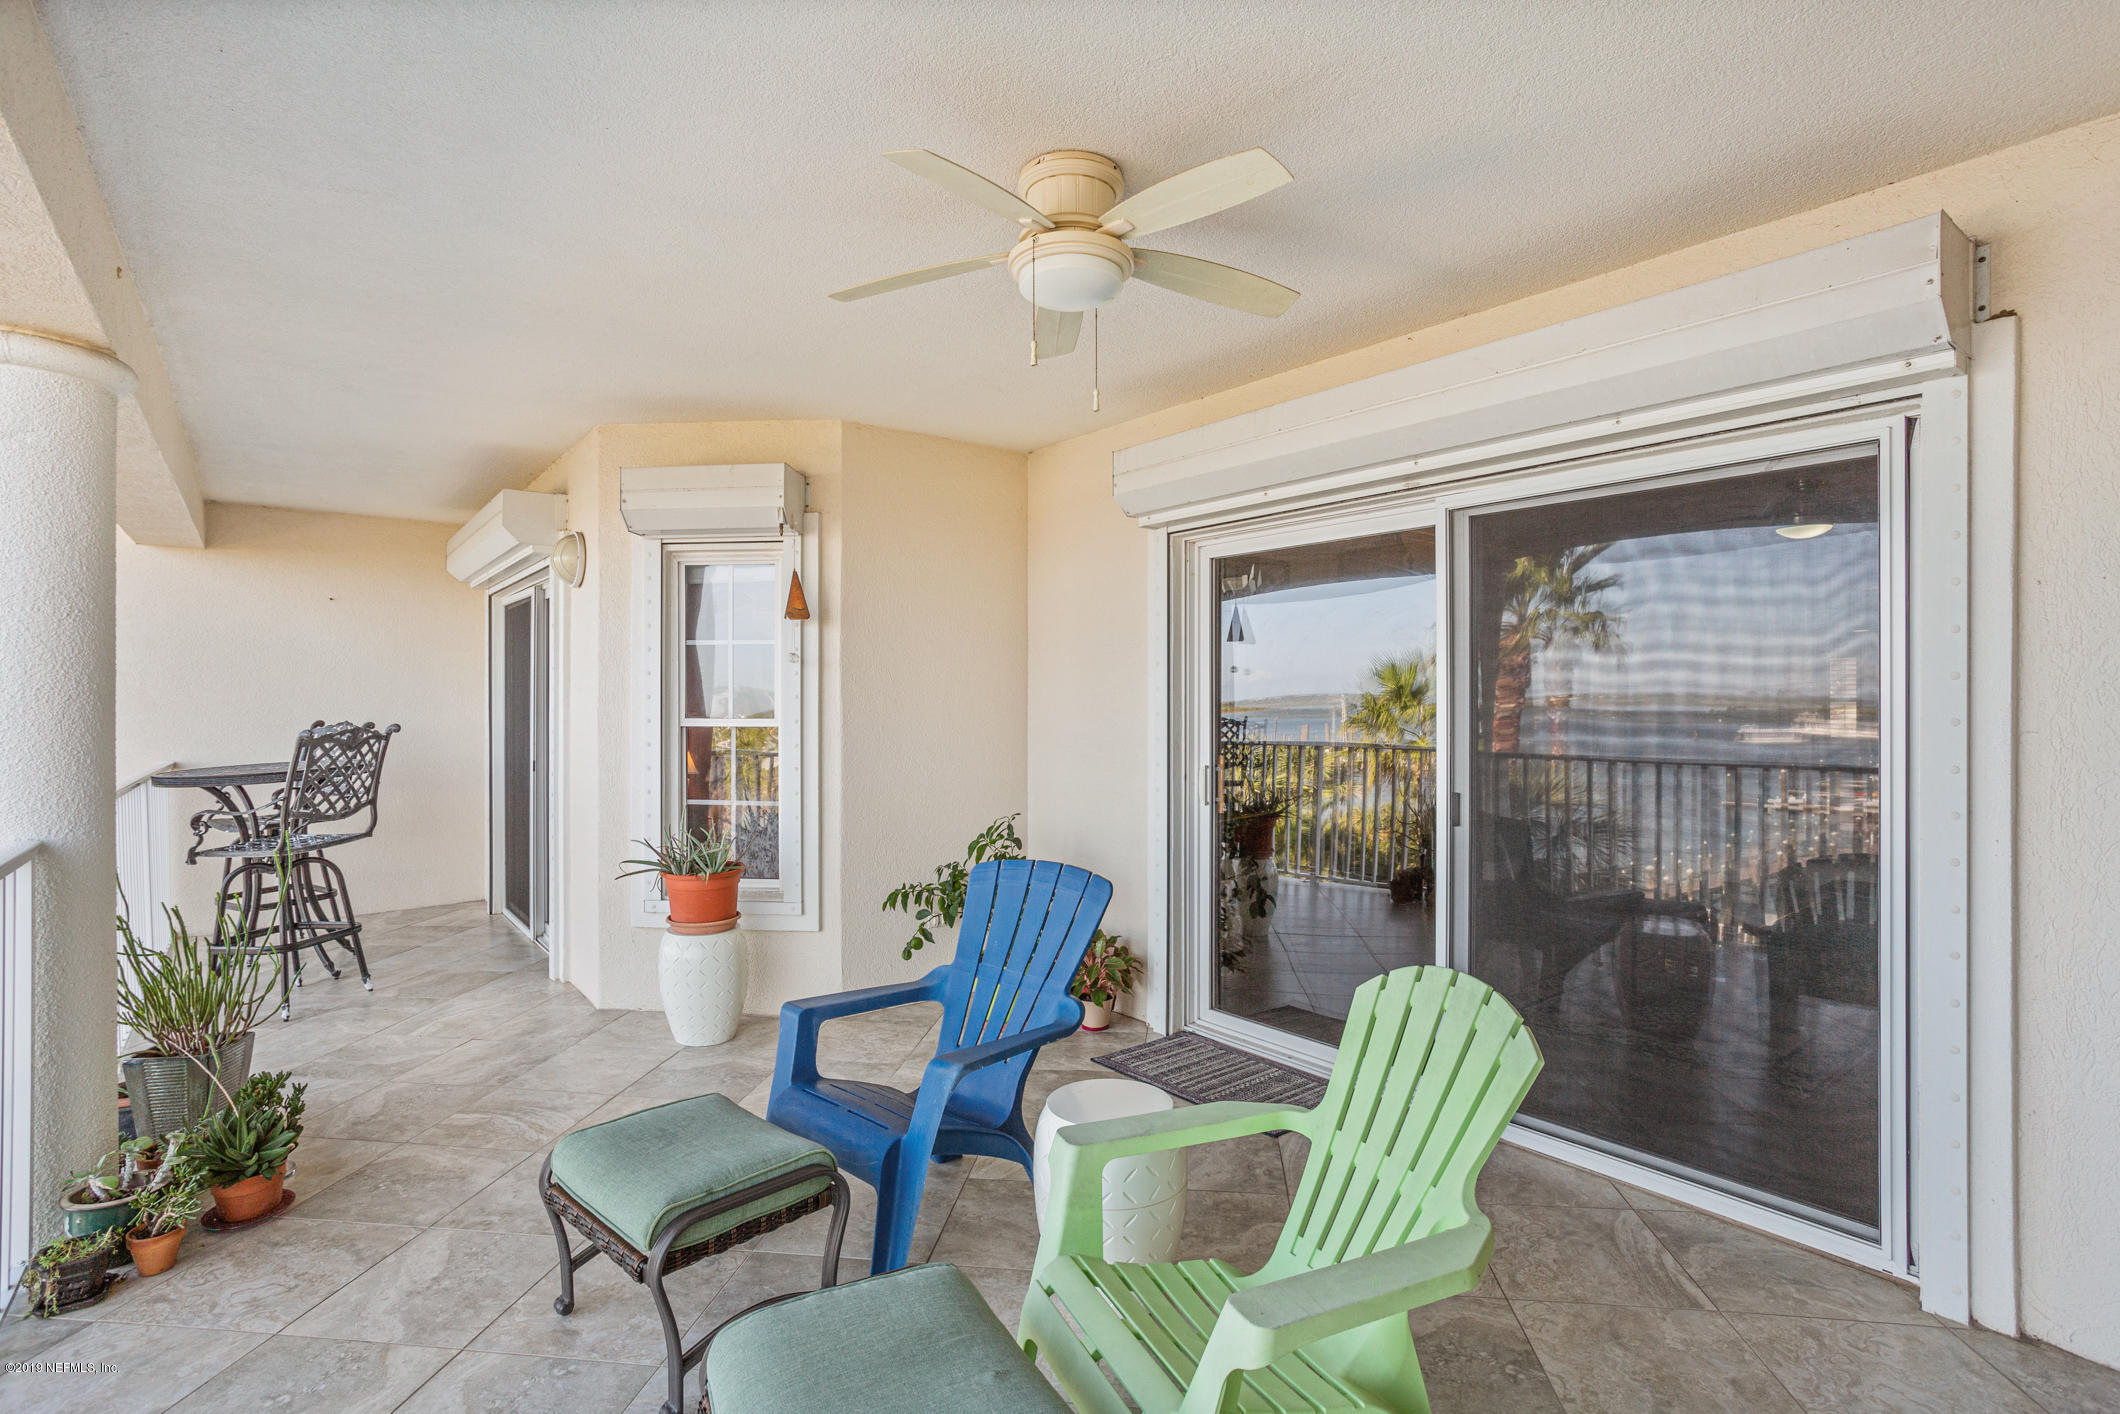 33 COMARES, ST AUGUSTINE, FLORIDA 32080, 3 Bedrooms Bedrooms, ,2 BathroomsBathrooms,Residential,For sale,COMARES,1025549